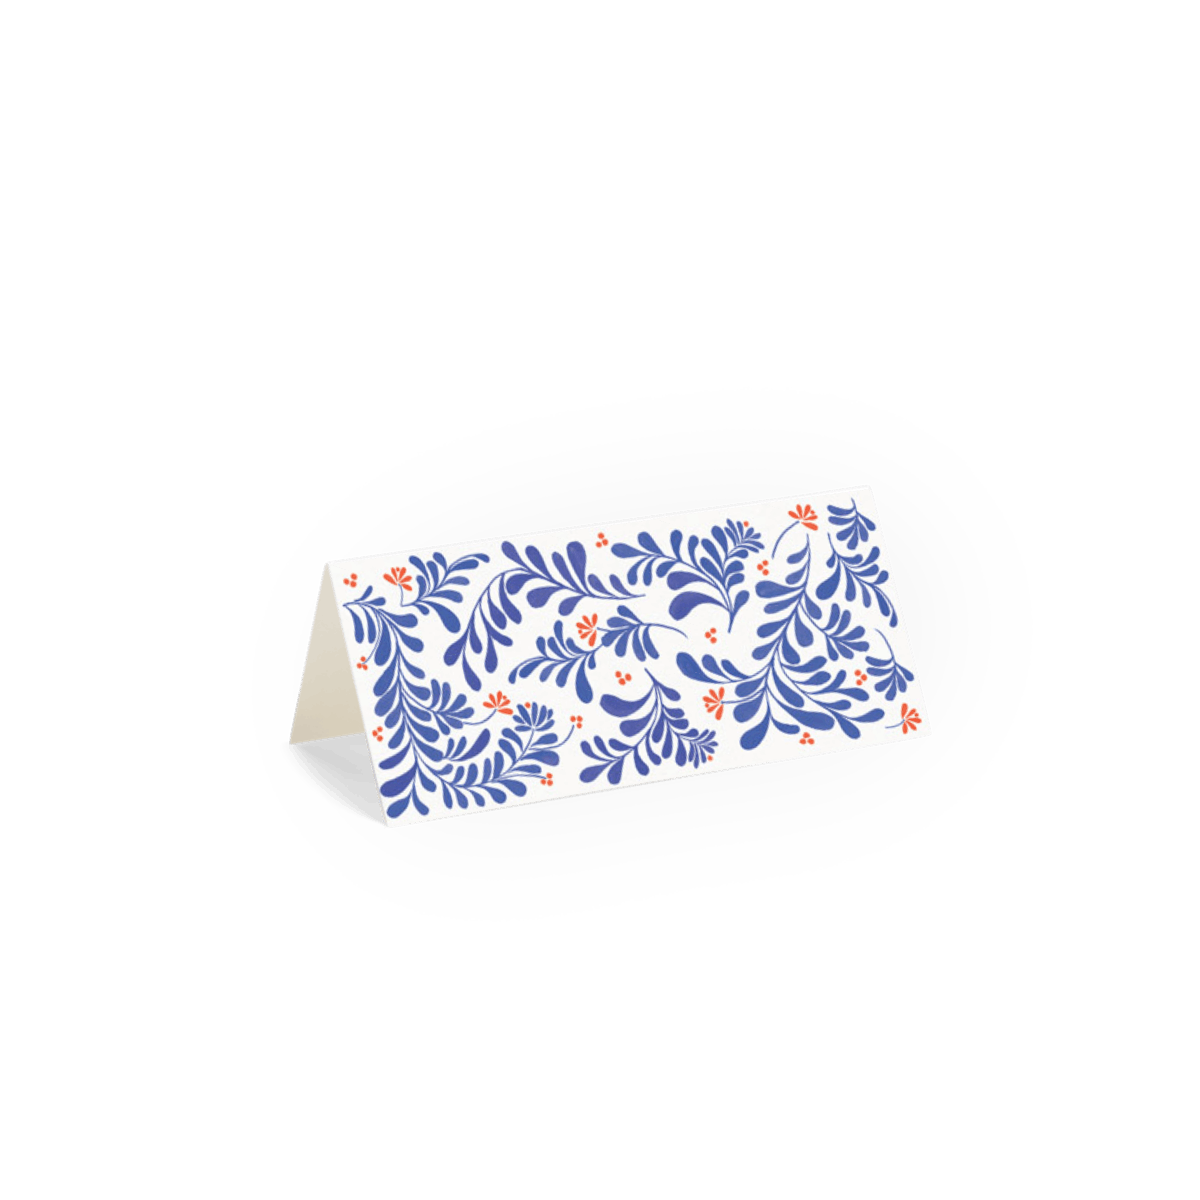 Https%3a%2f%2fwww.papier.com%2fproduct image%2f81187%2f15%2fmoroccan foliage 19436 back 1561642015.png?ixlib=rb 1.1